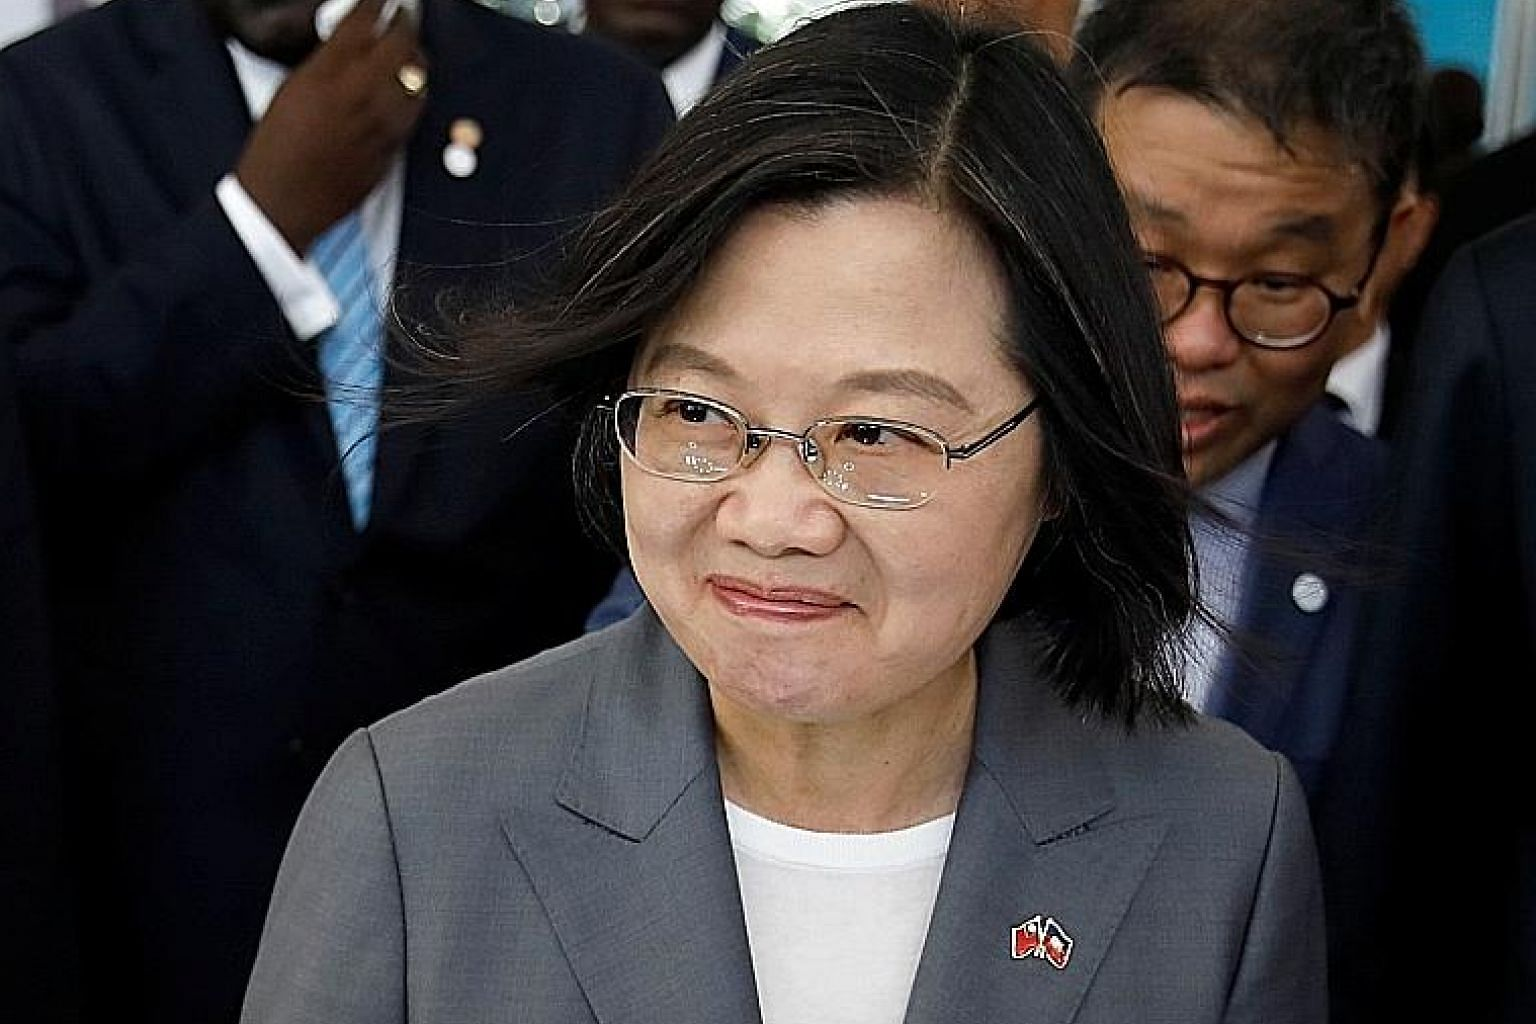 """Kaohsiung Mayor Han Kuo-yu signed trade deals for fruit and fishery products worth $7 billion when he visited China in March. President Tsai Ing-wen has warned that Taiwan's democracy faces renewed threats from """"overseas forces"""". Mr Ko Wen-je's recor"""